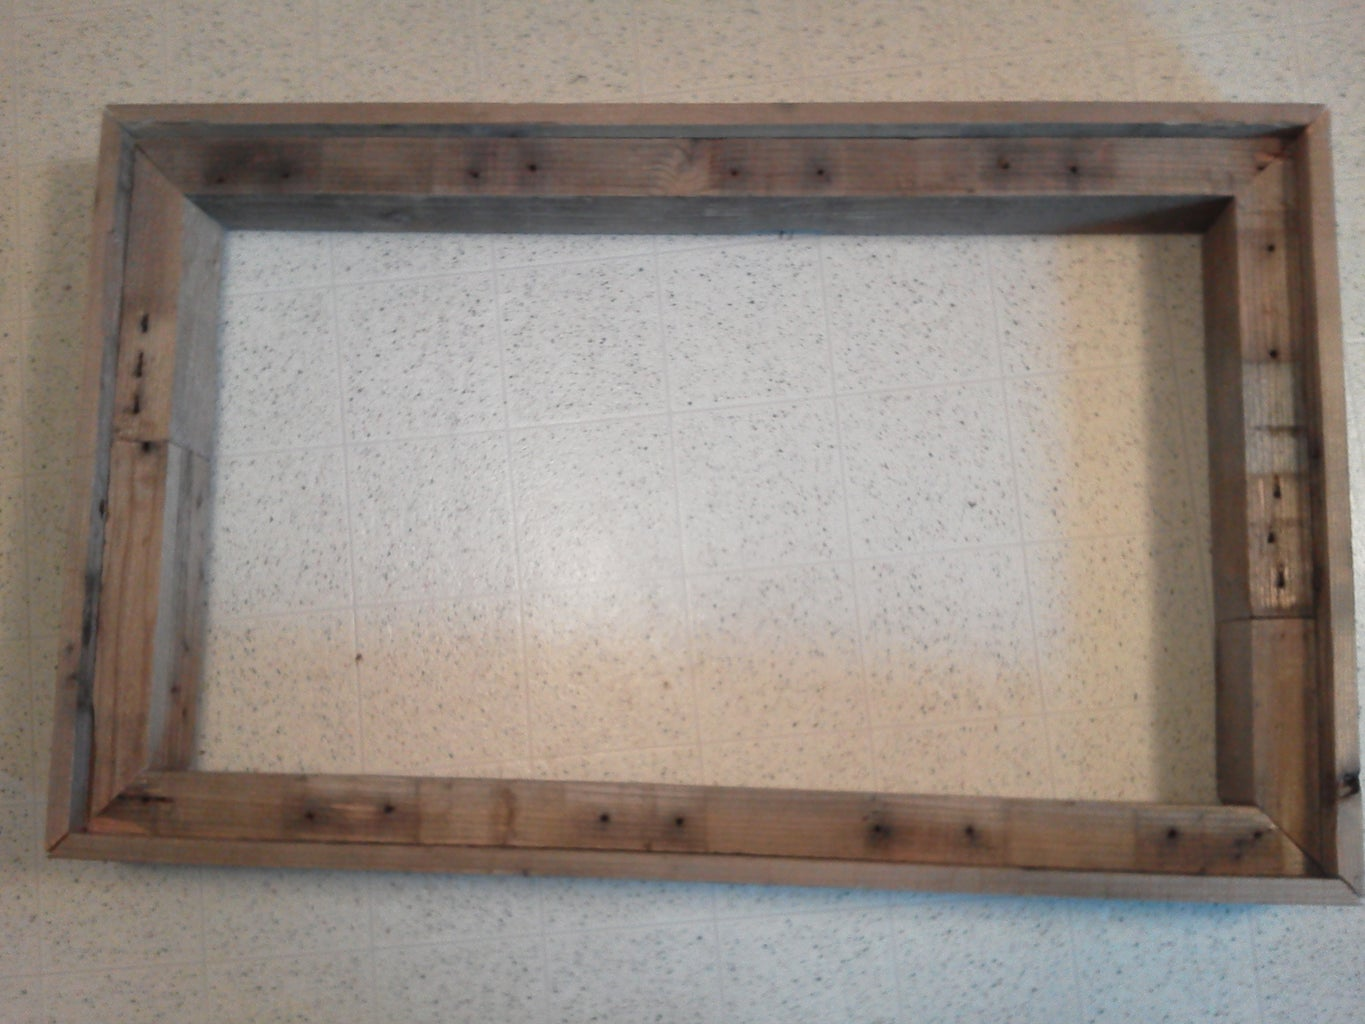 Cut and Assemble Frame